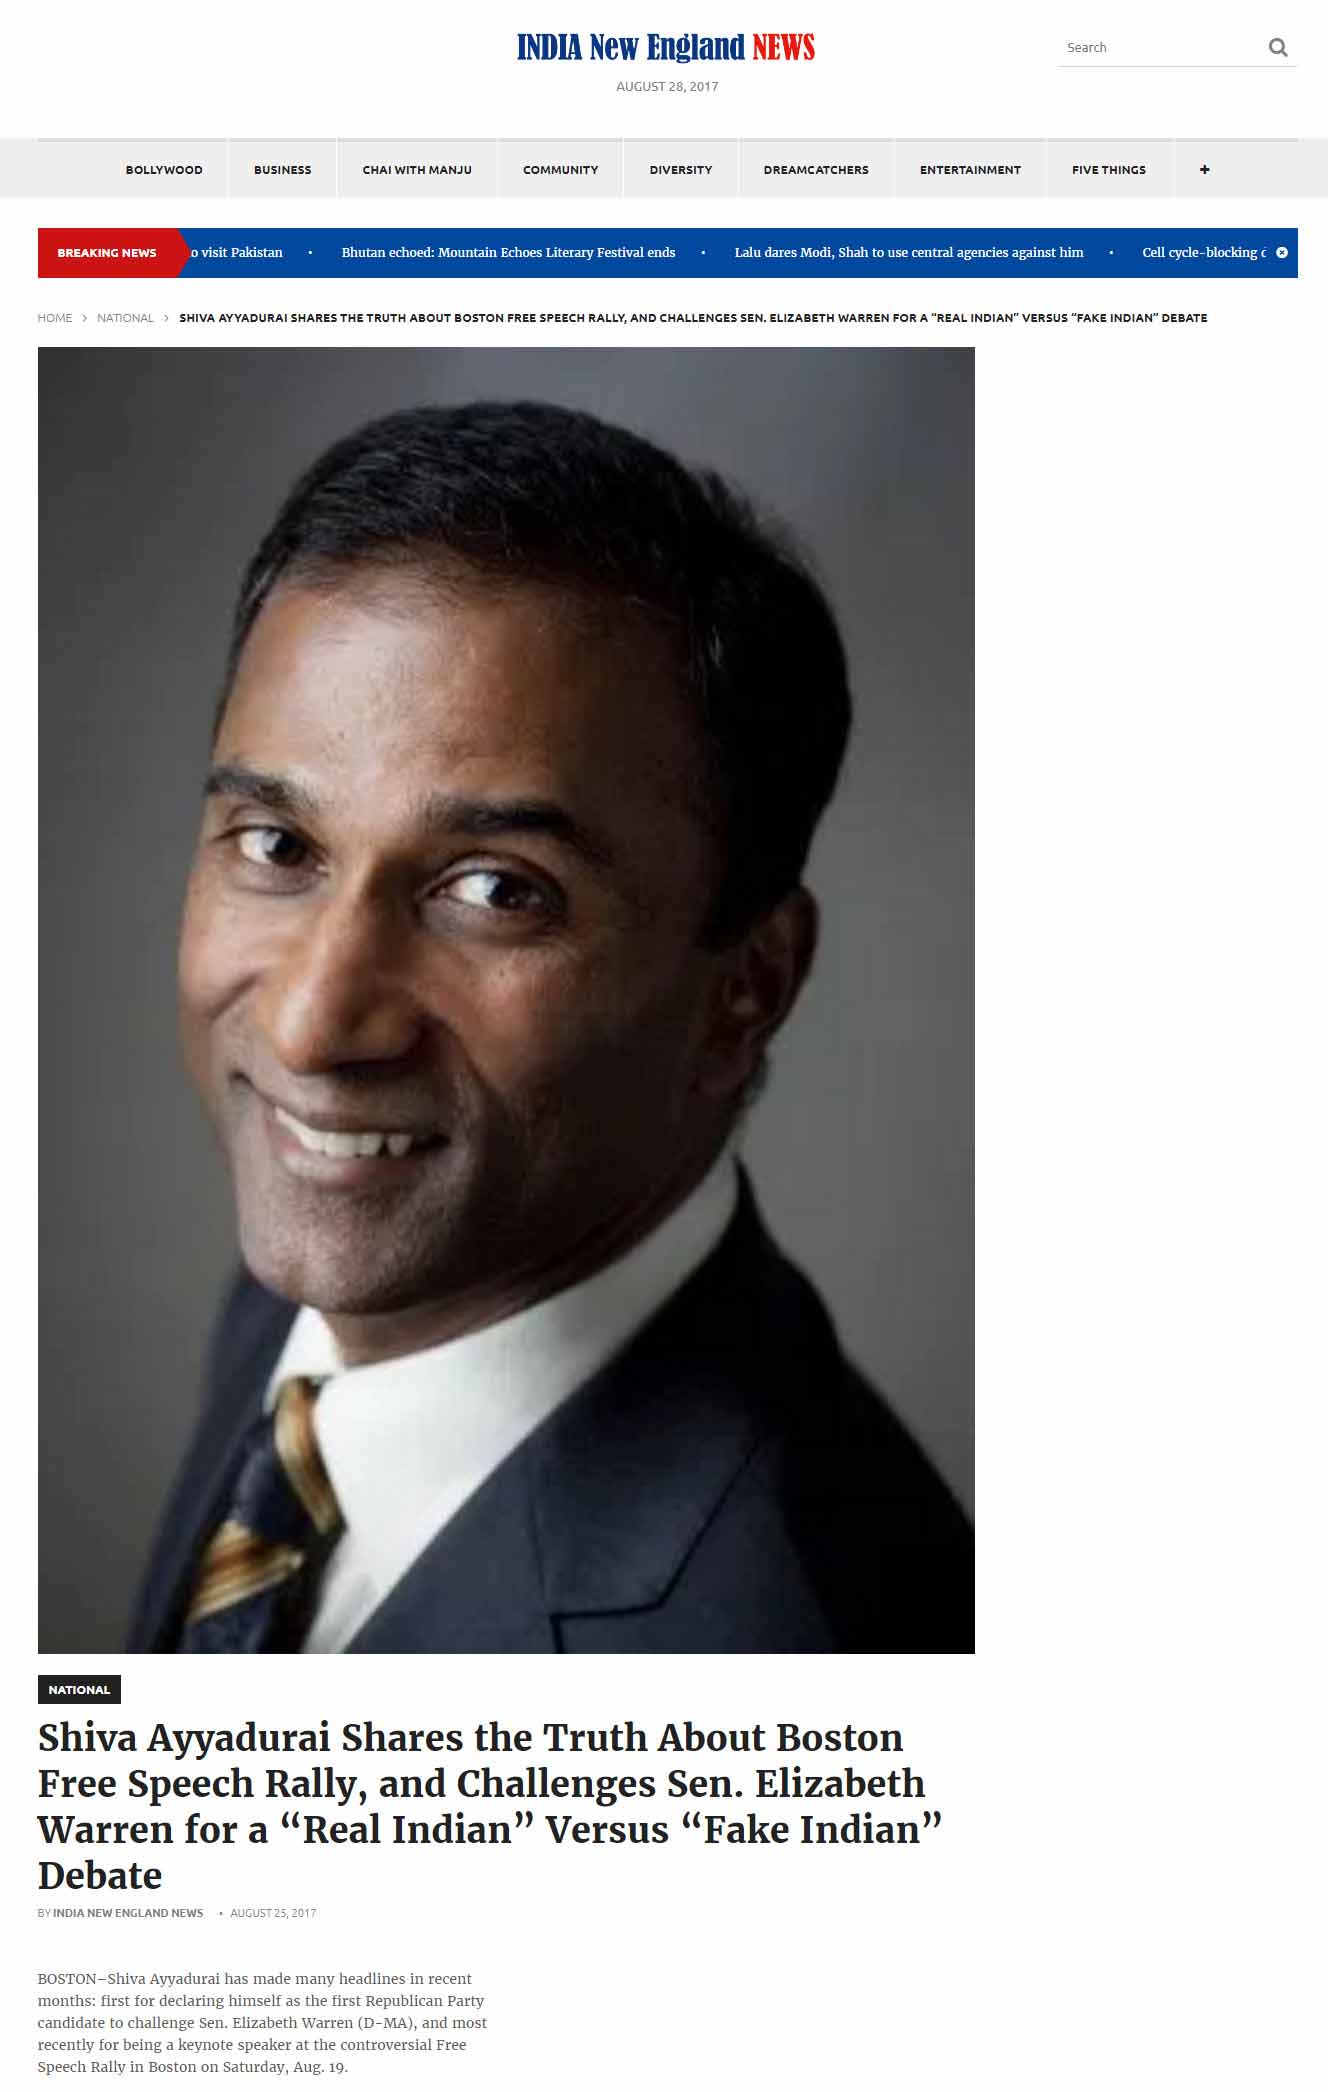 "Shiva Ayyadurai Shares The Truth About Boston Free Speech Rally, And Challenges Sen. Elizabeth Warren For A ""Real Indian"" Versus ""Fake Indian"" Debate"